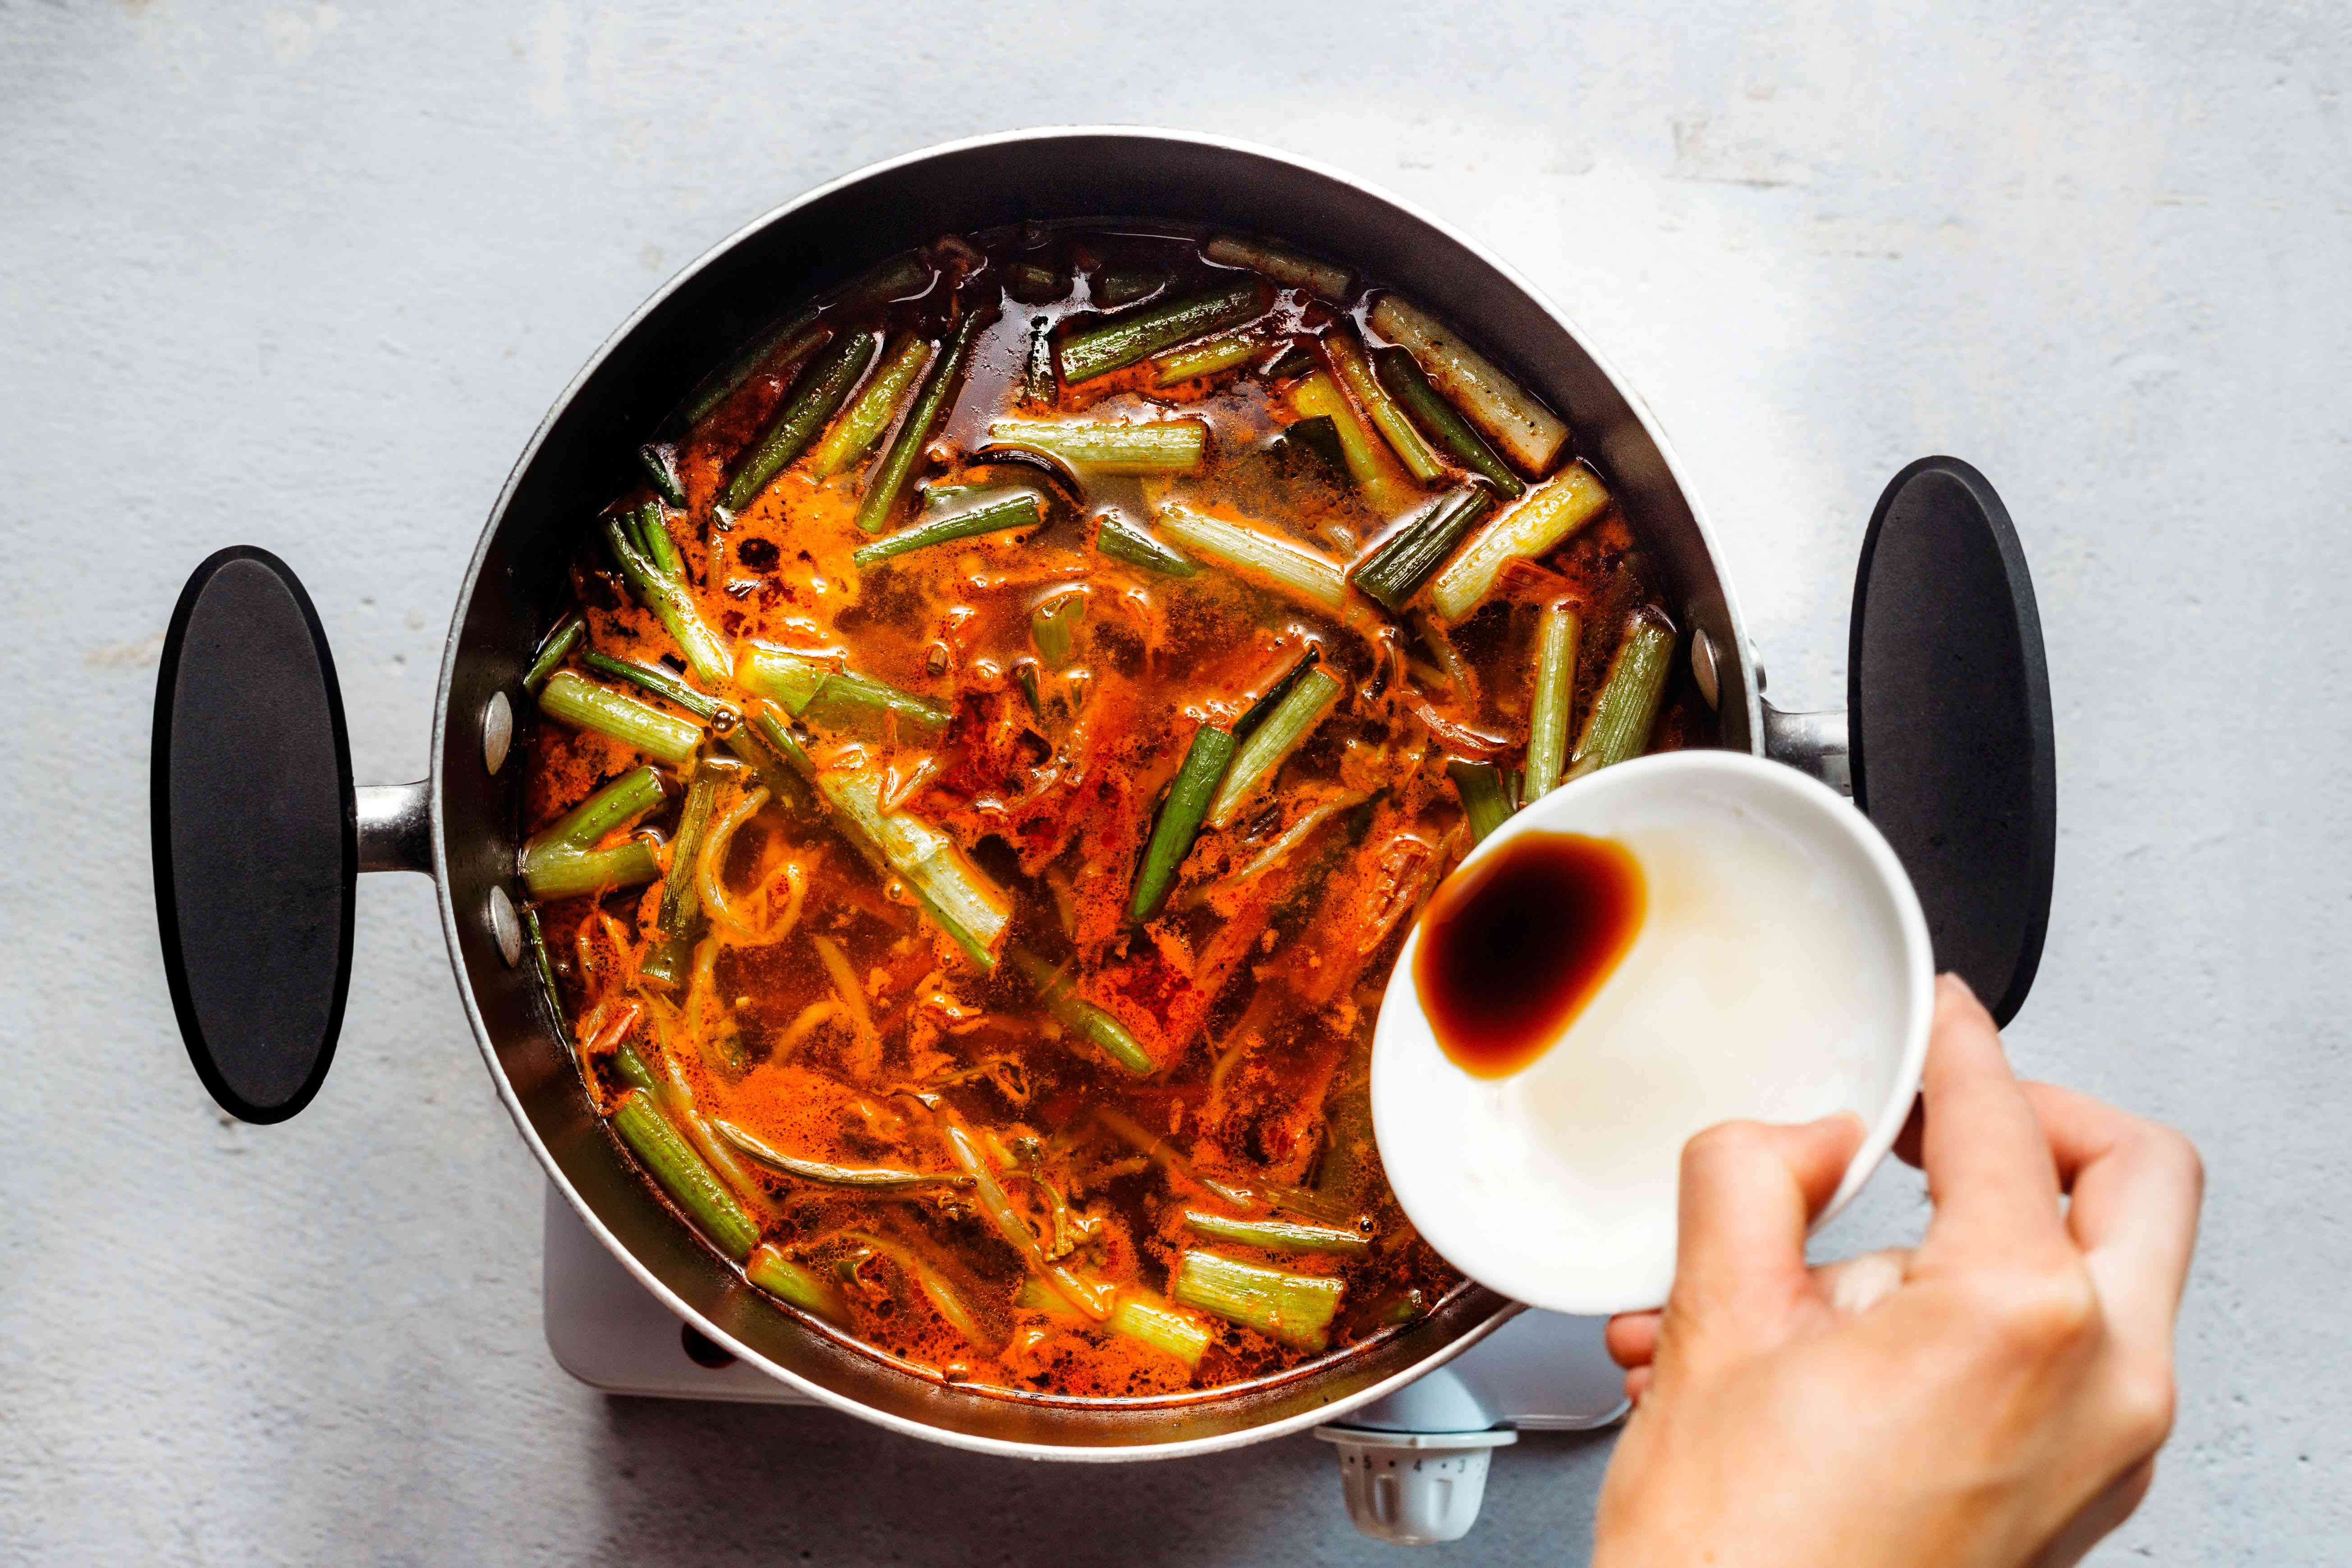 Adding soy sauce to the boiling soup